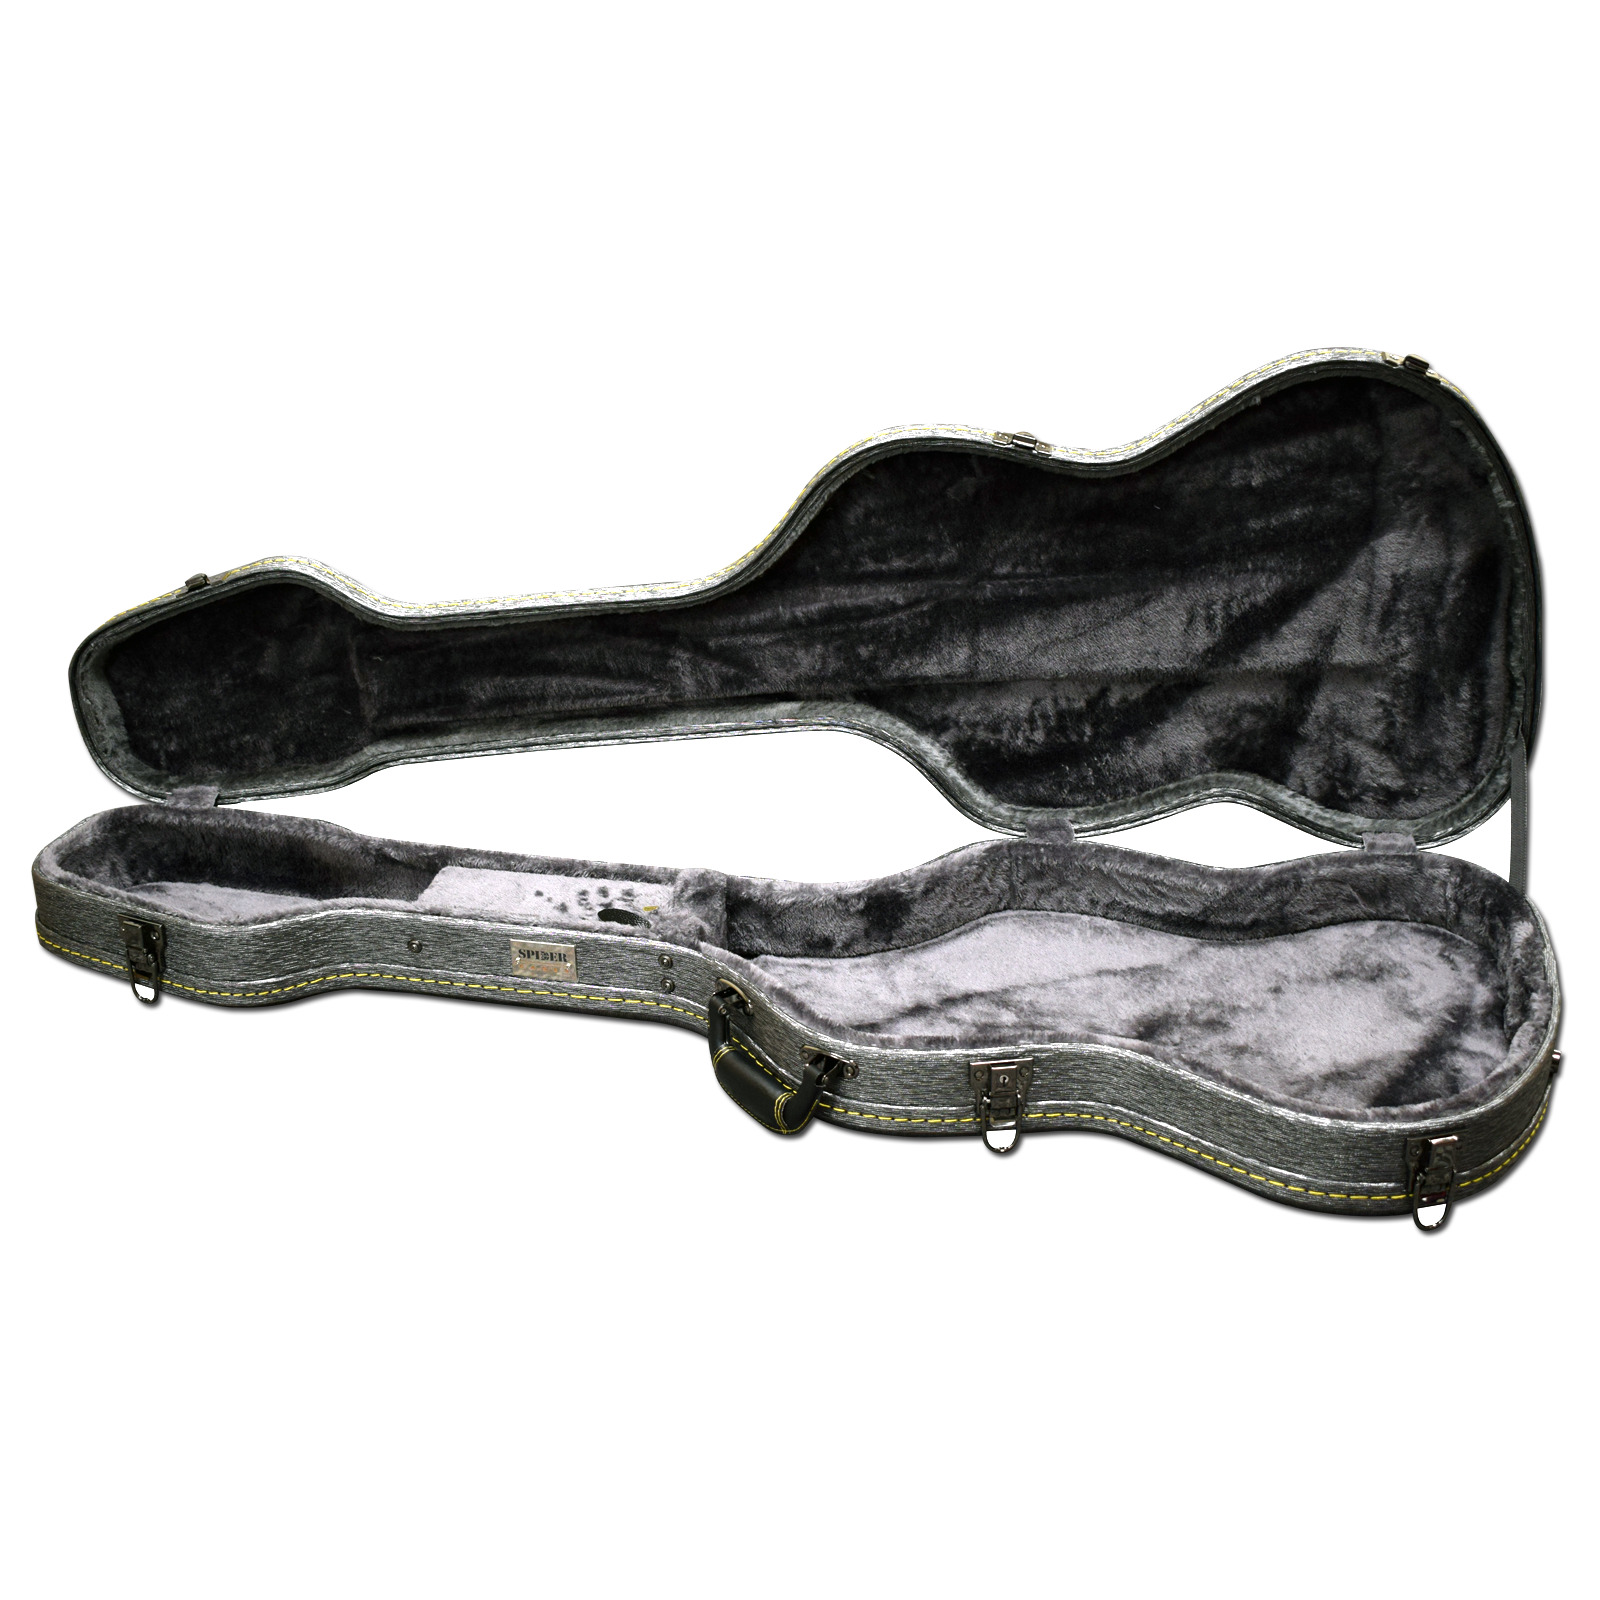 Spider Bass Hard Guitar Hard Case